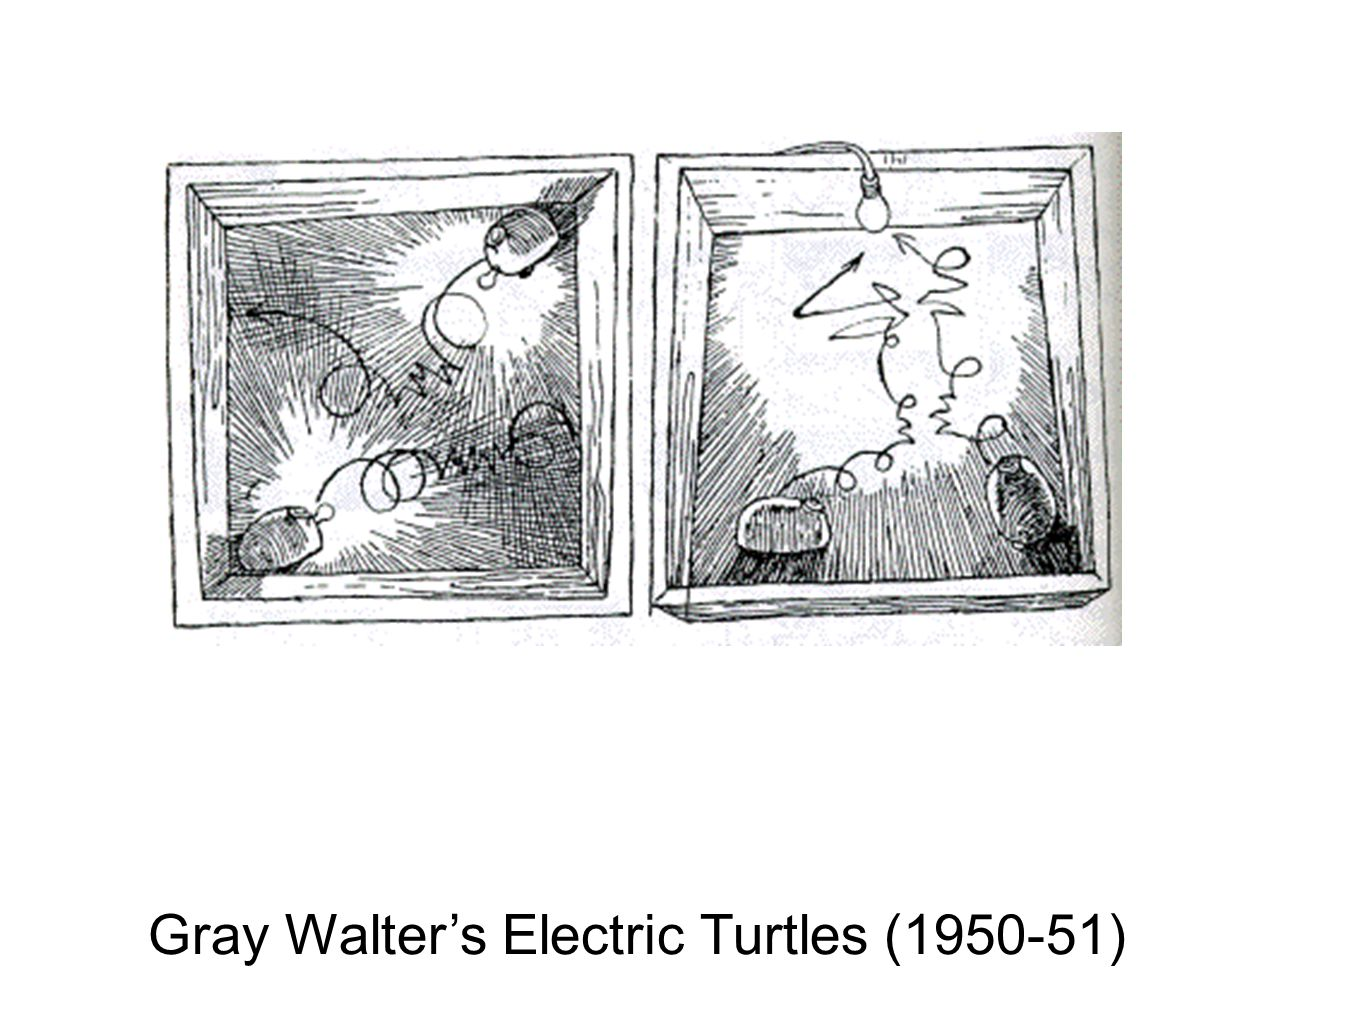 Gray Walter's Electric Turtles (1950-51)